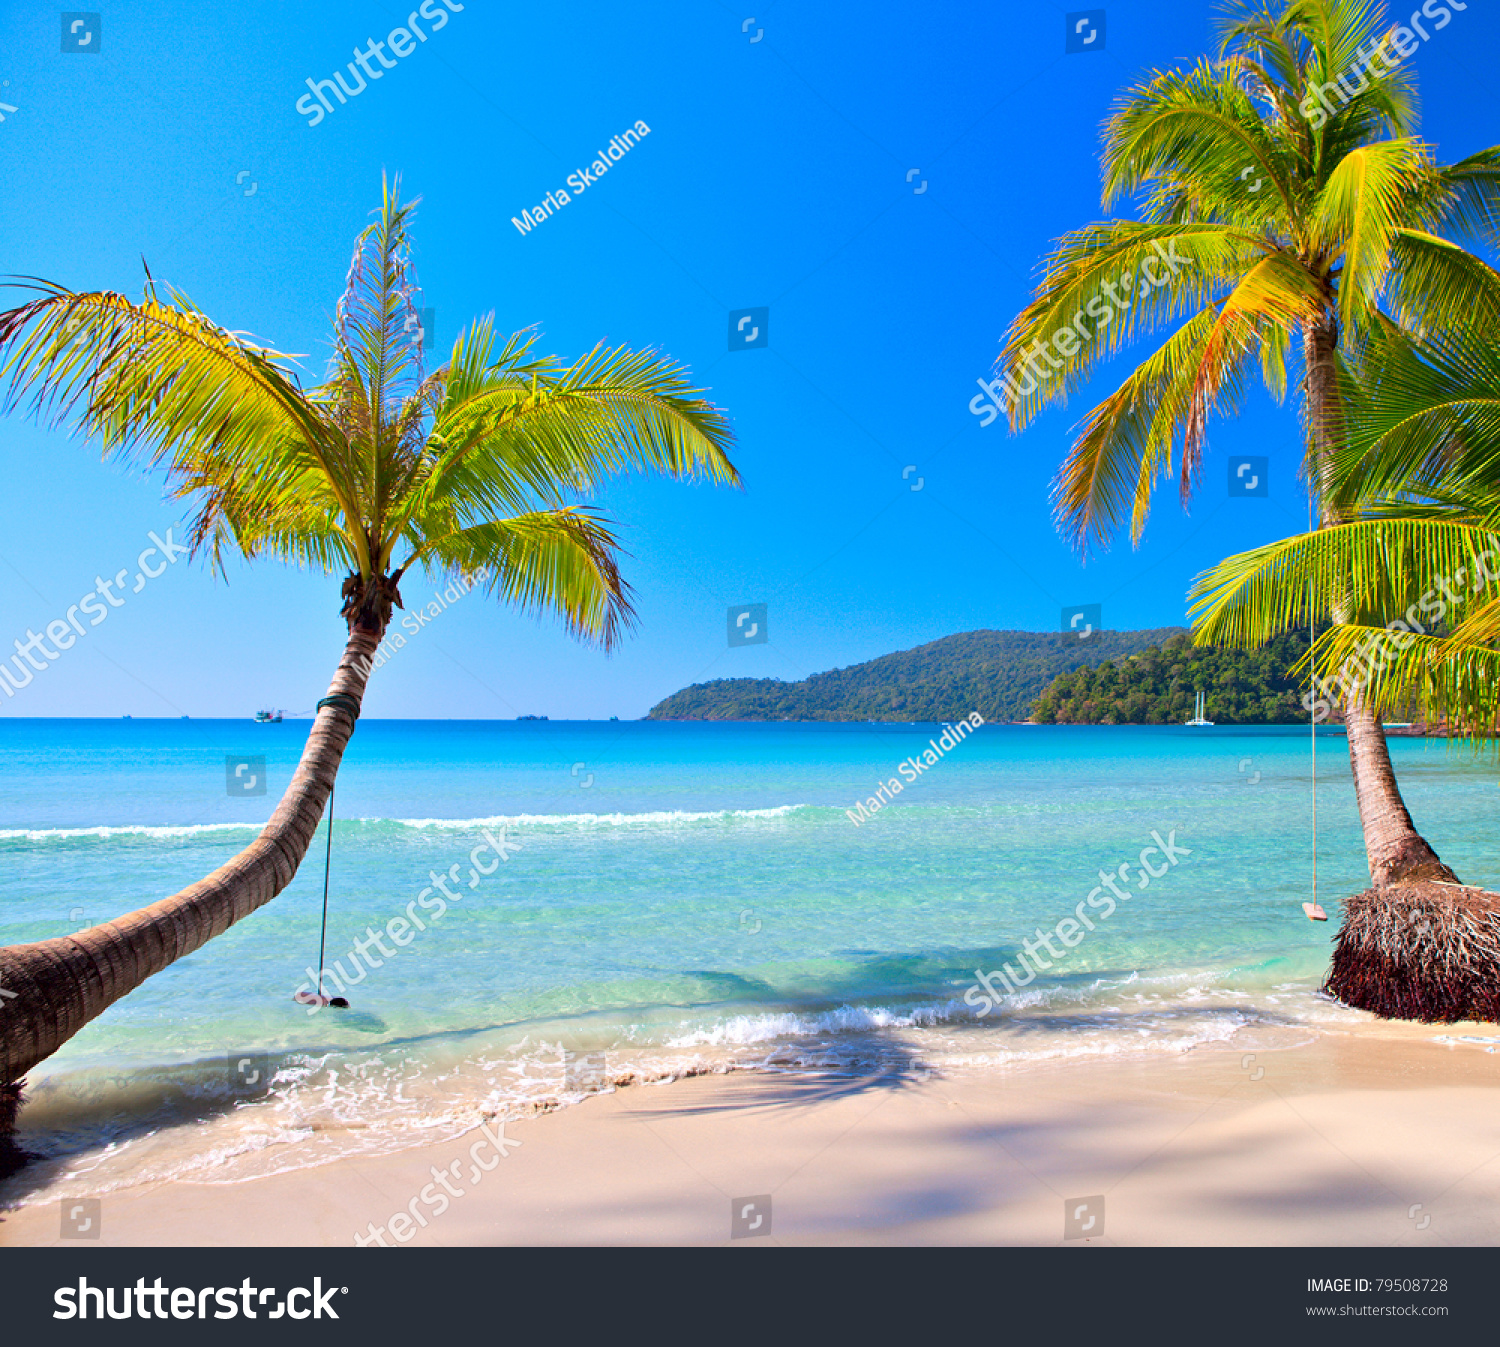 Exotic Beach: Sunny Tropical Beach Under Blue Sky Stock Photo 79508728